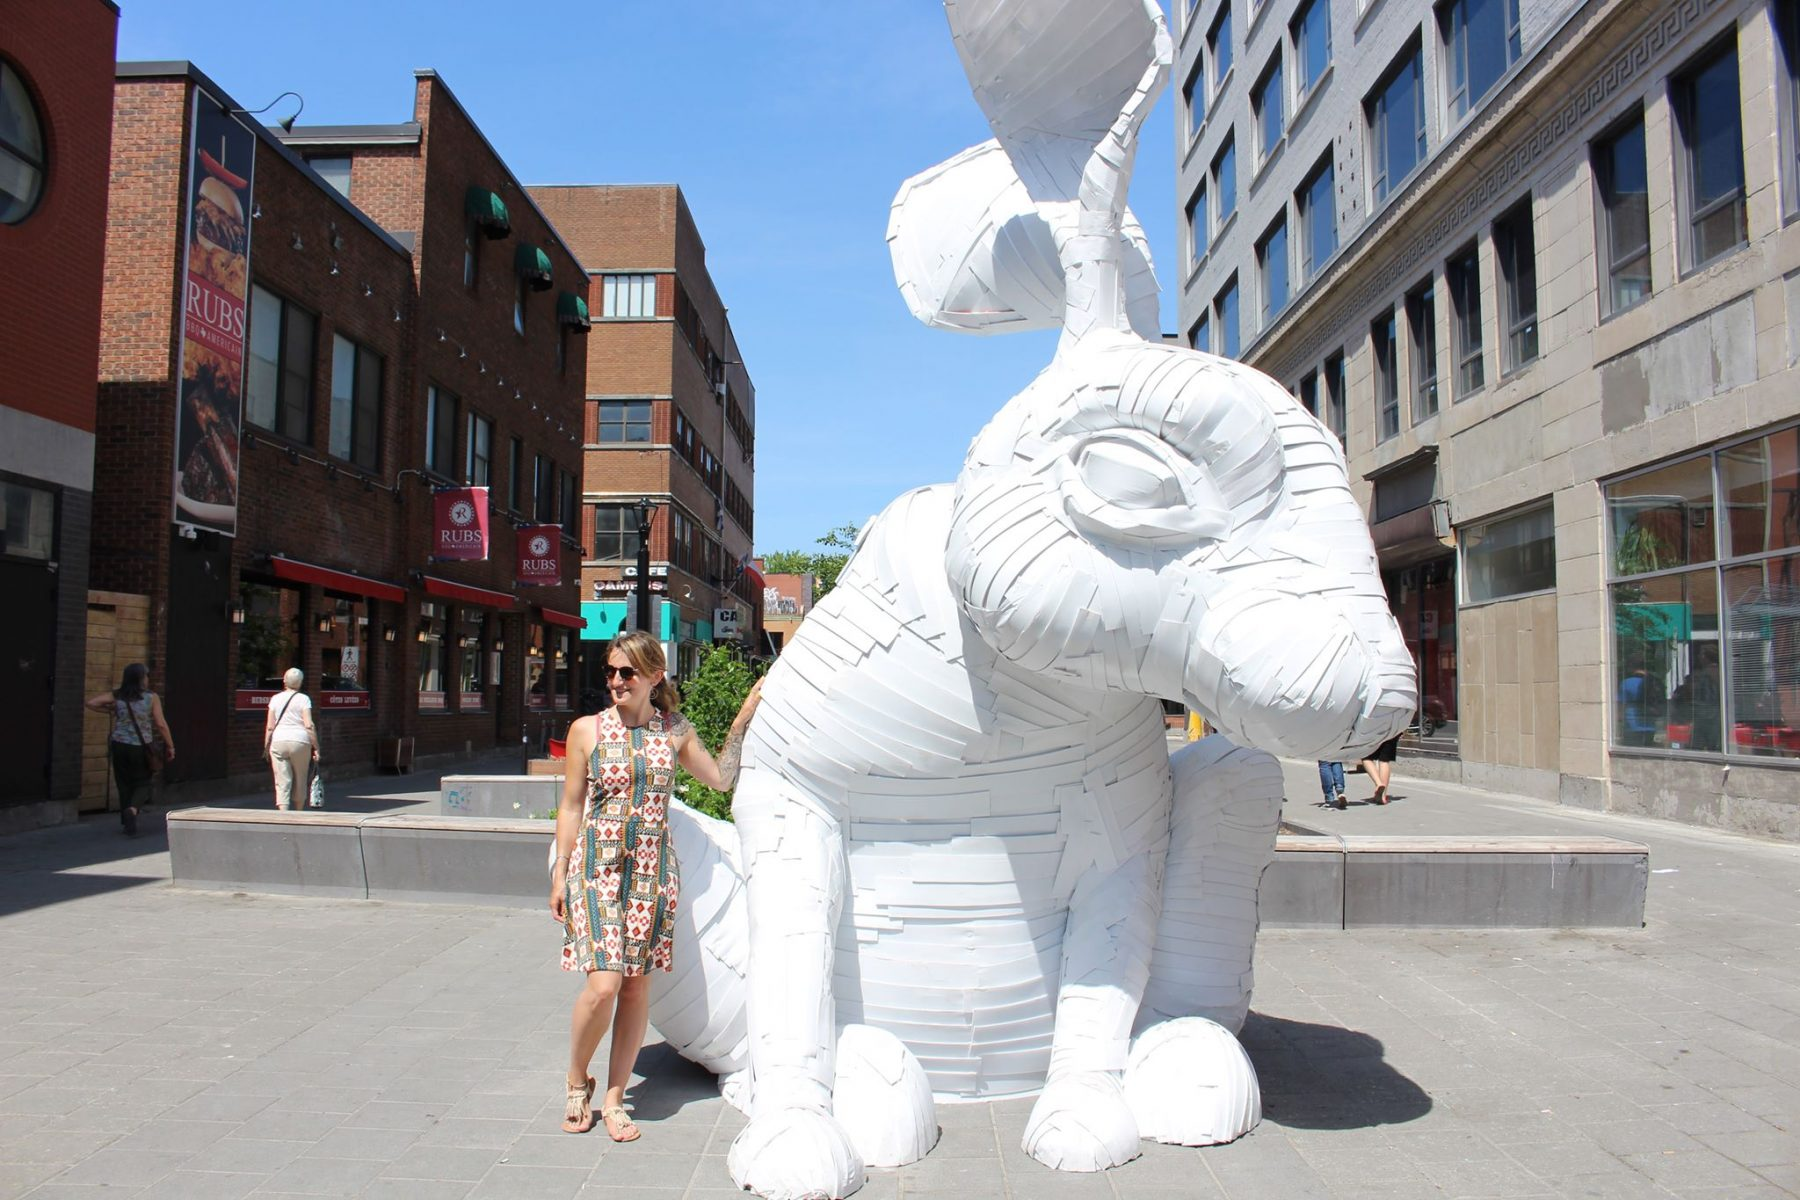 mural-festival-arts-huge-bunny-montreal